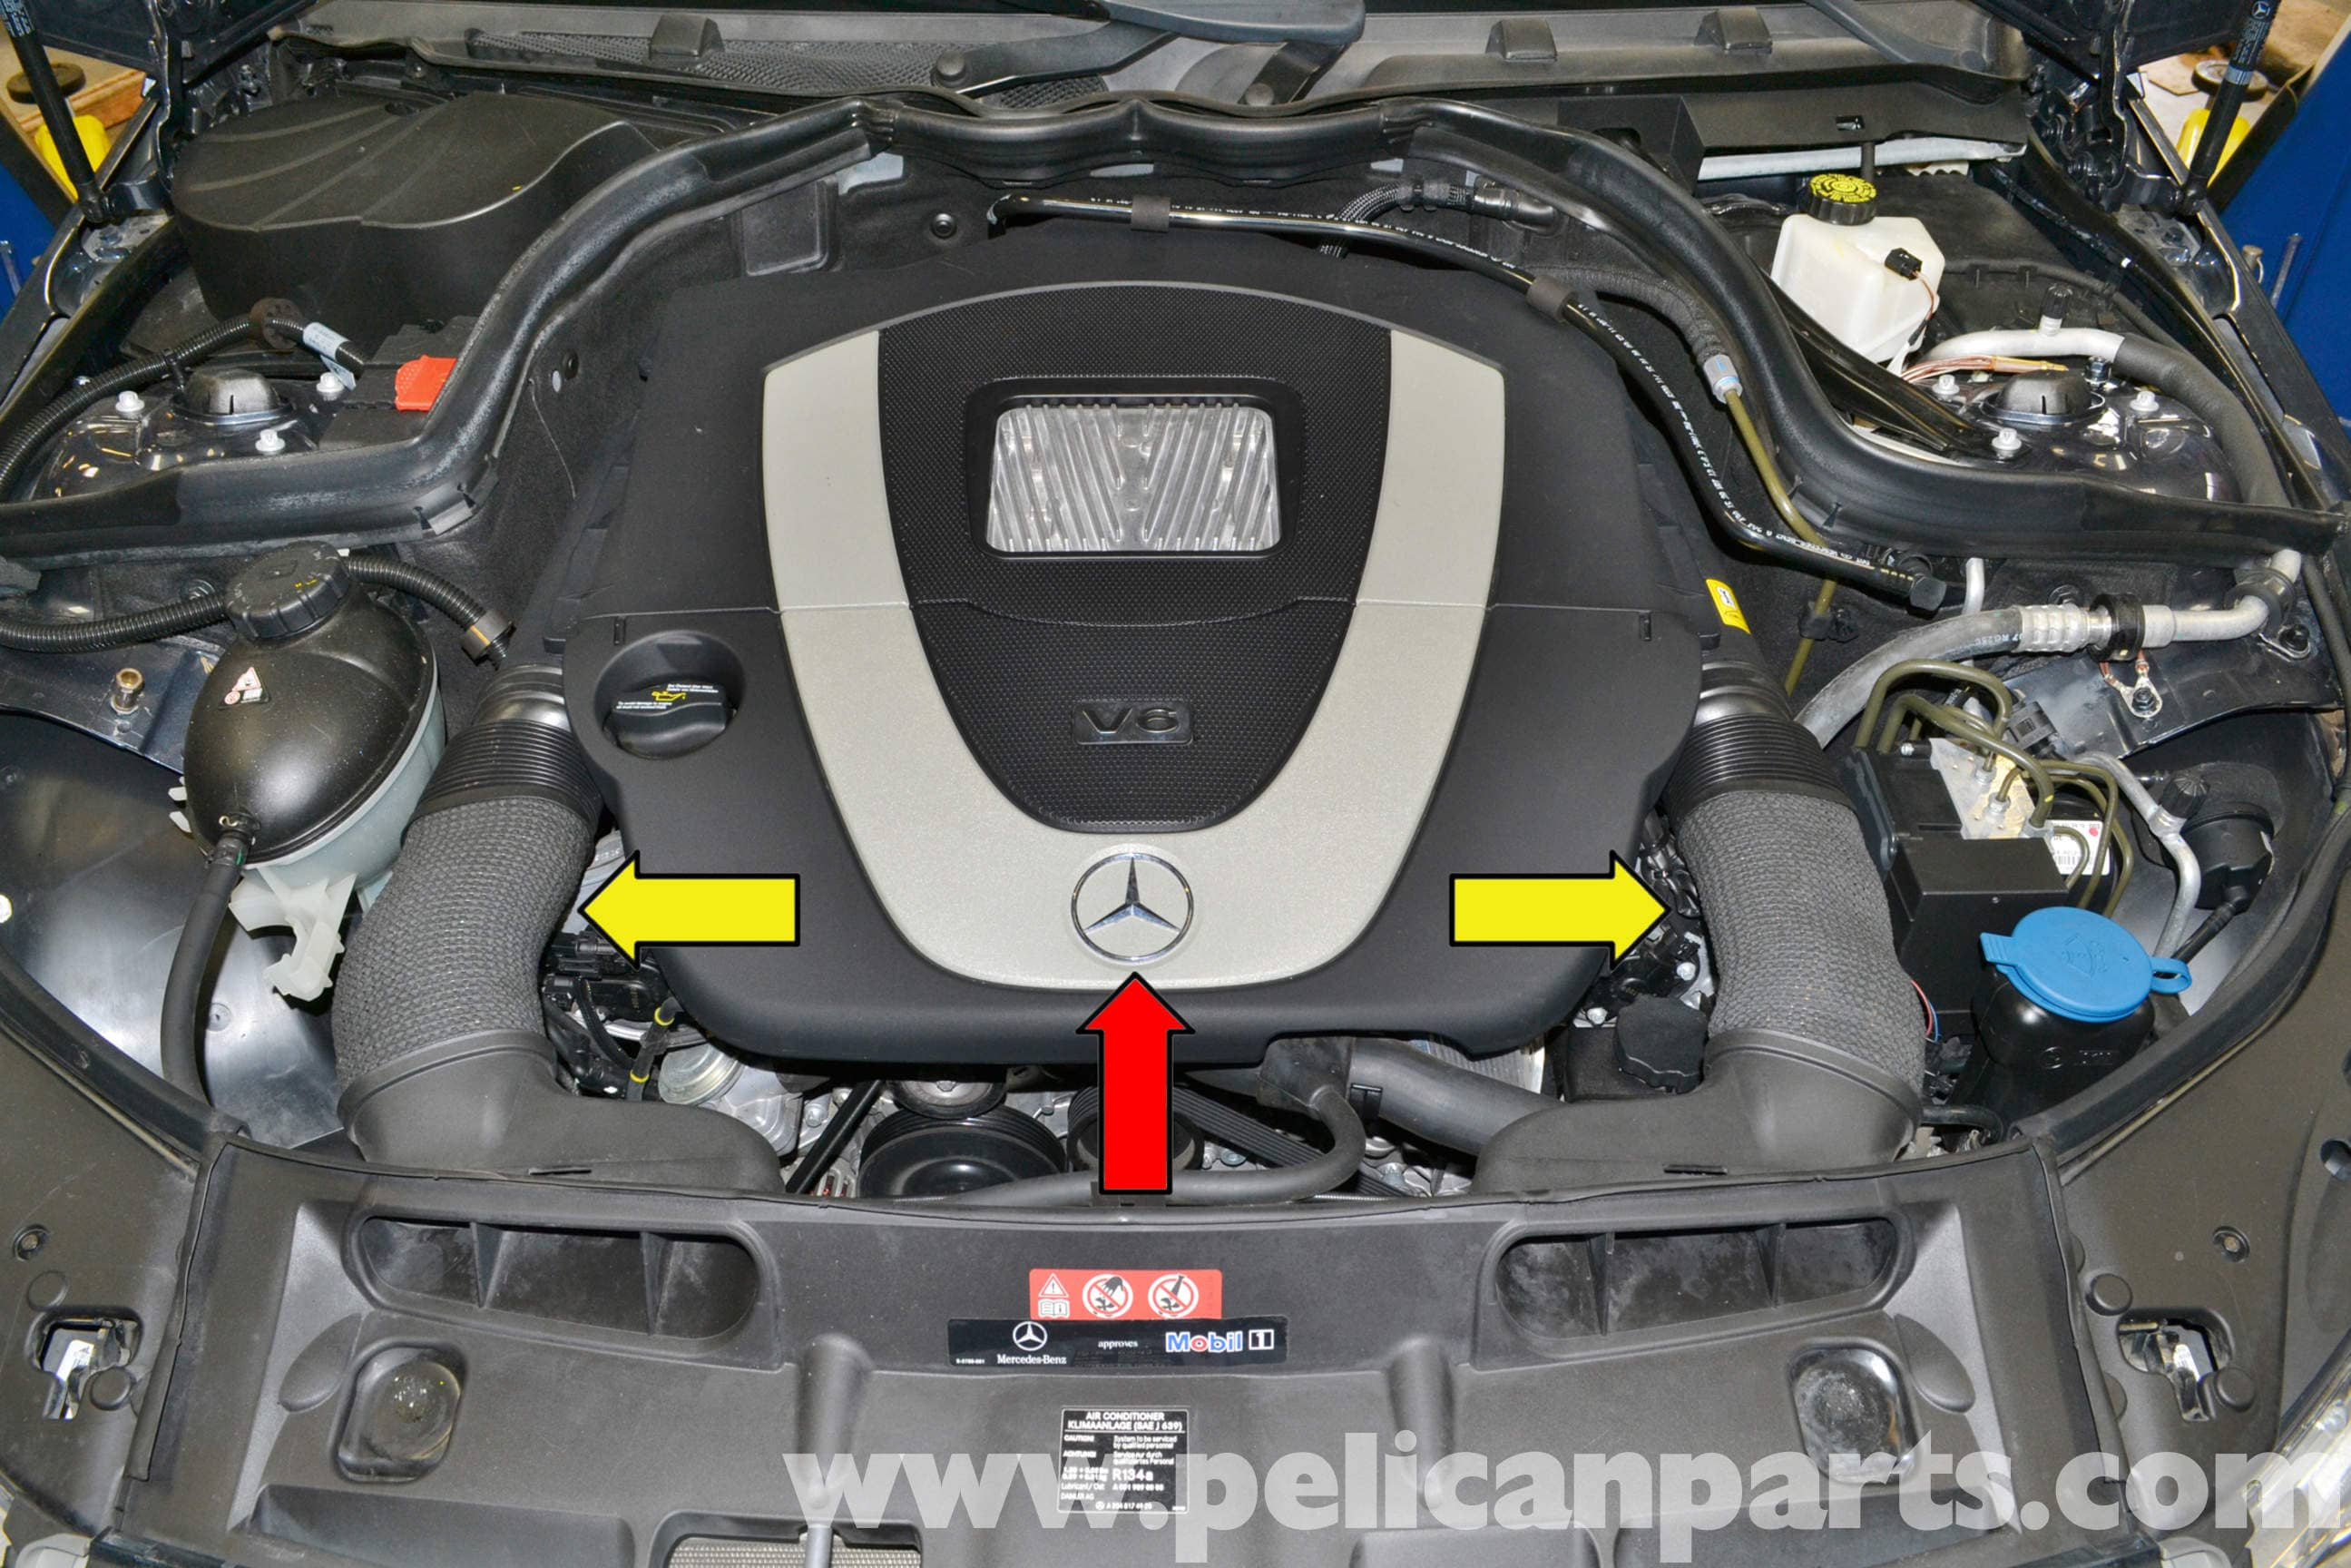 How To Flush Coolant System >> Mercedes-Benz W204 Thermostat Replacement - (2008-2014 ...